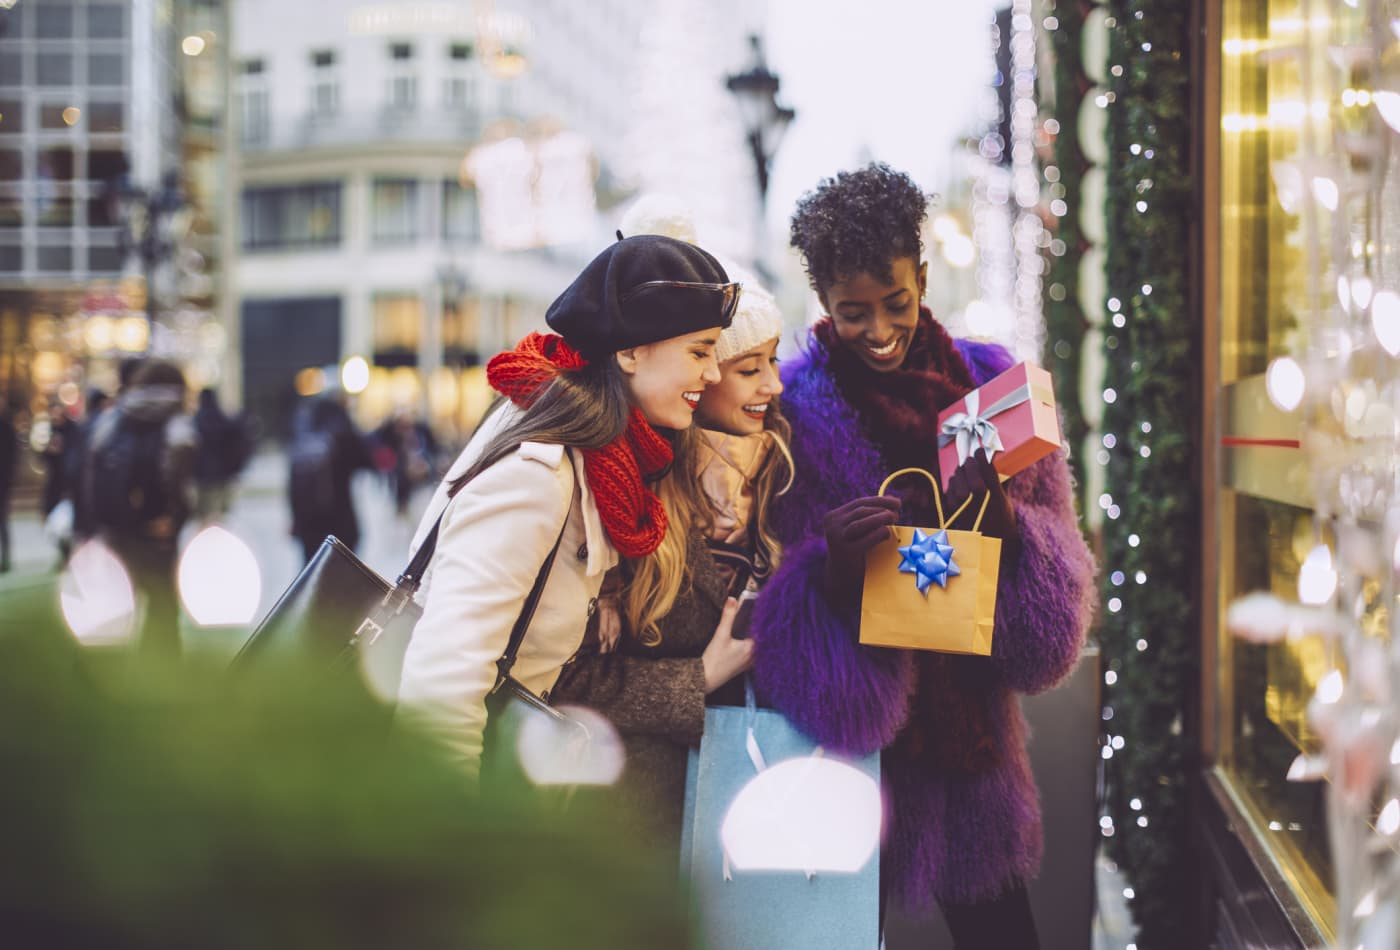 New Capital One Walmart Rewards Card members can earn a $50 bonus to offset holiday shopping